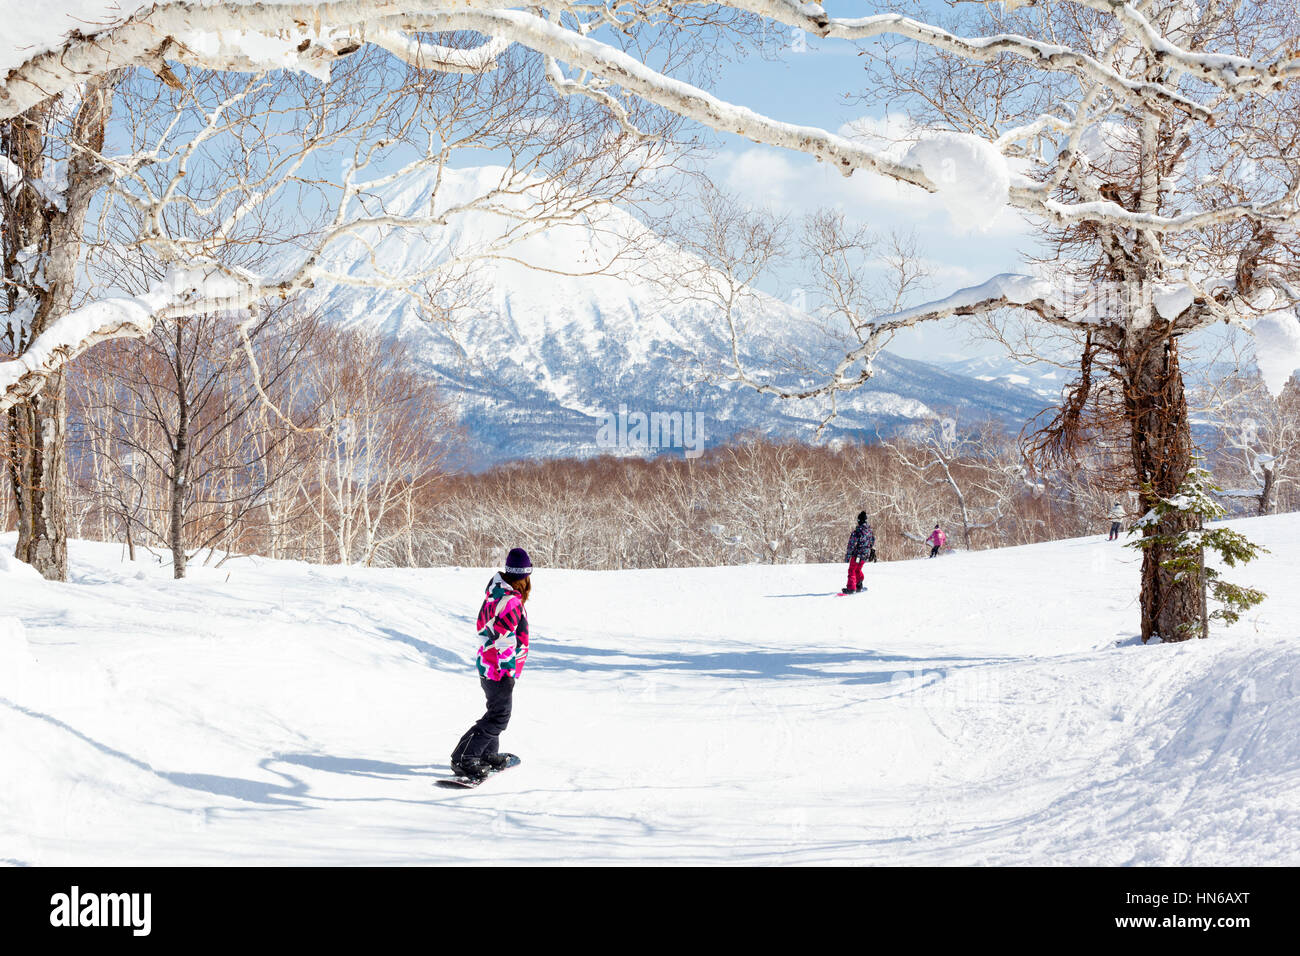 NISEKO, JAPAN - MARCH 10 : General view of people snowboarding on a tree-lined piste in the Niseko Grand Hirafu - Stock Image